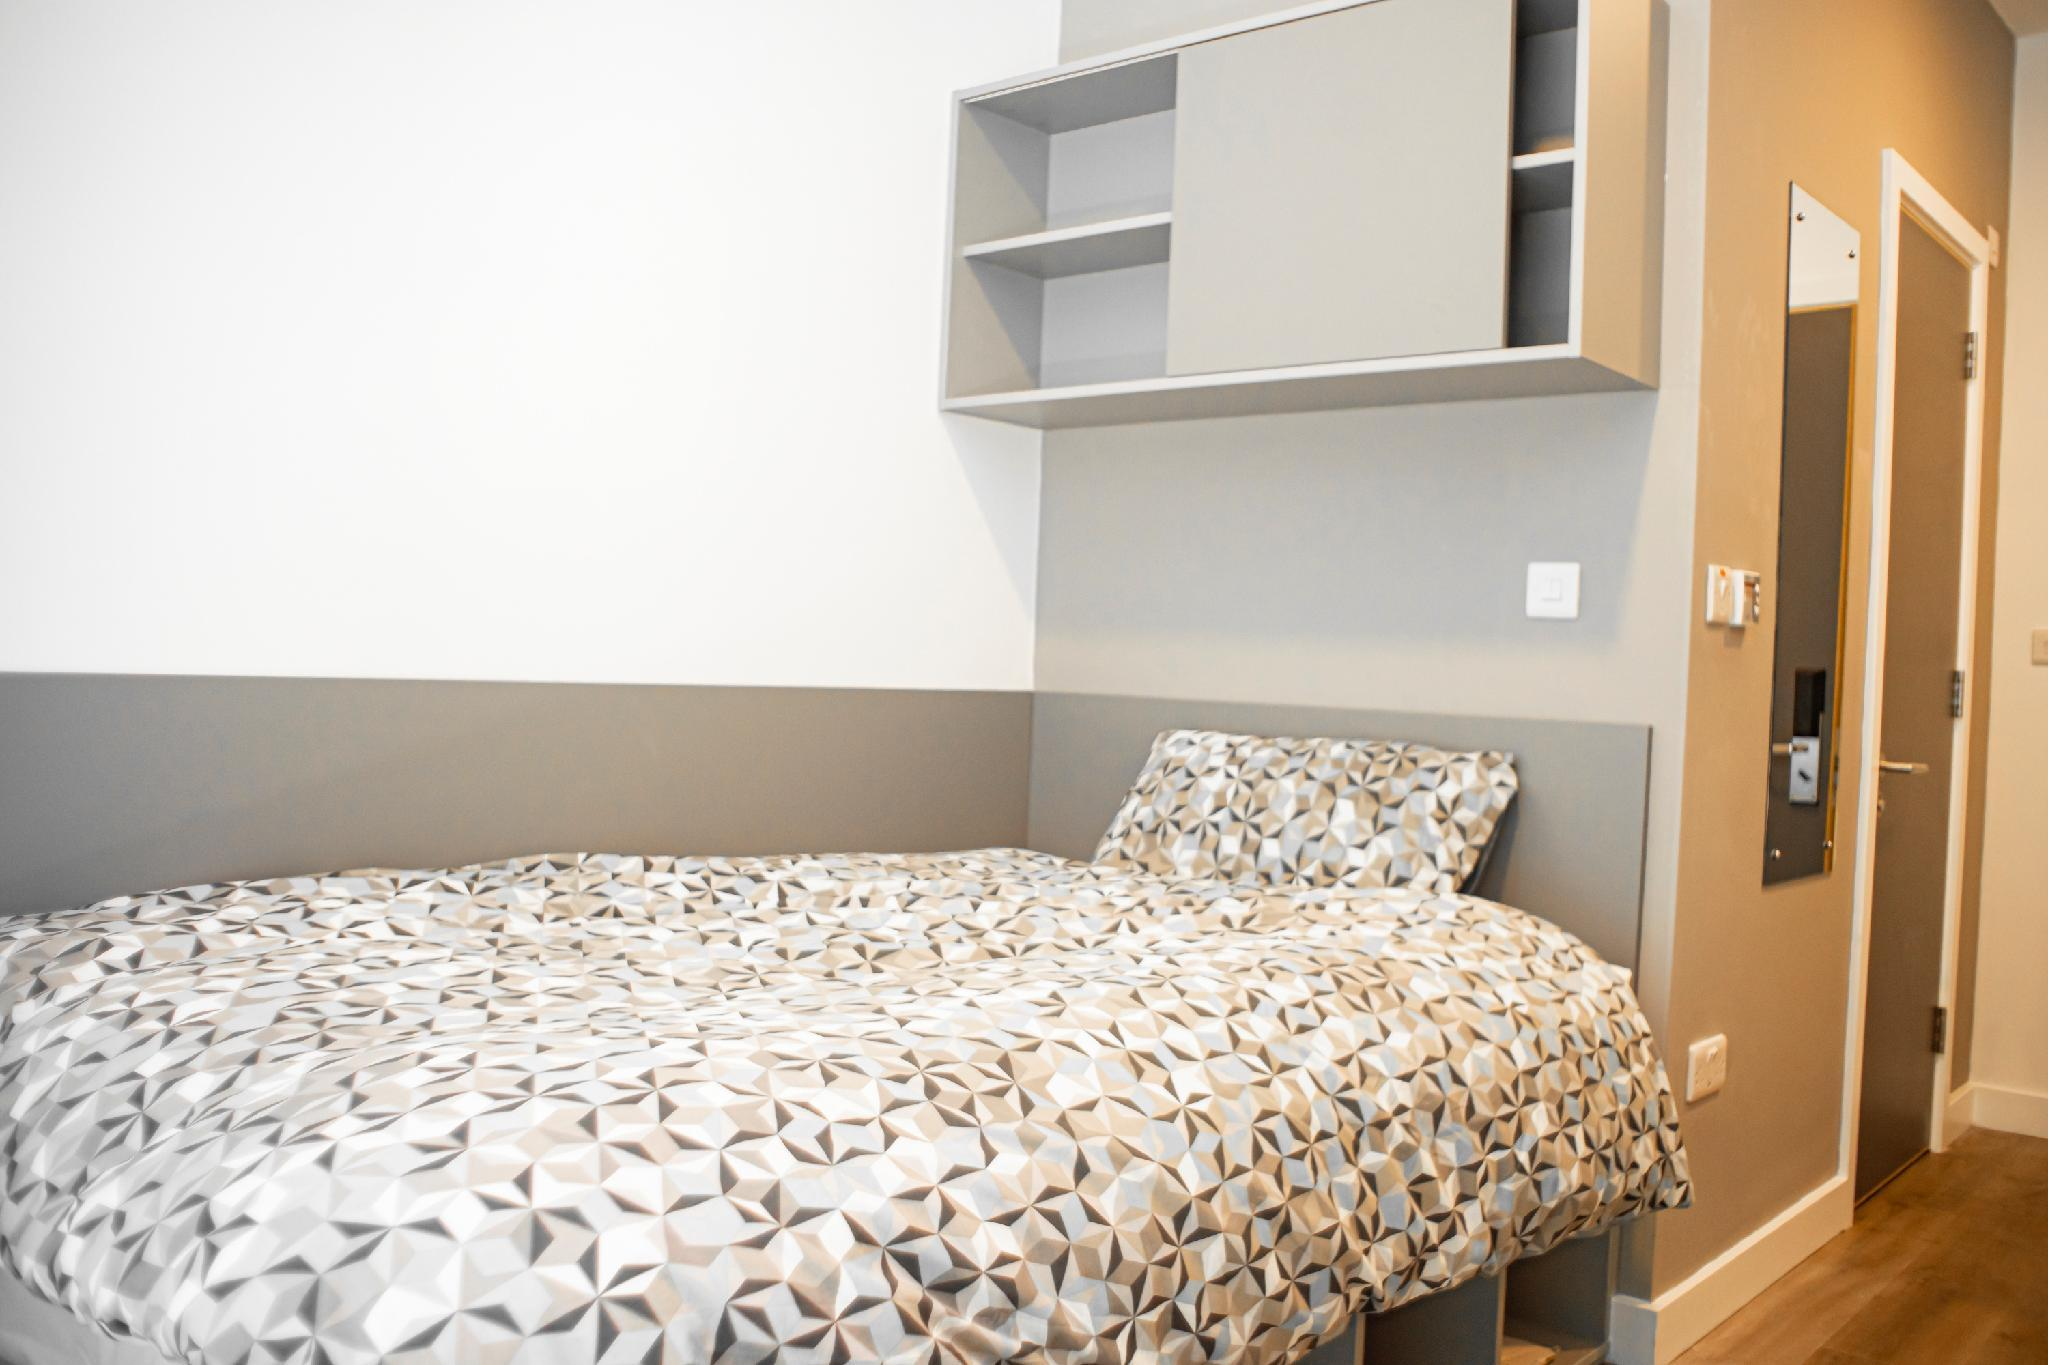 Schlafzimmer Campus Hashtag Dublin Campus Accommodation, Irland - Agoda.com